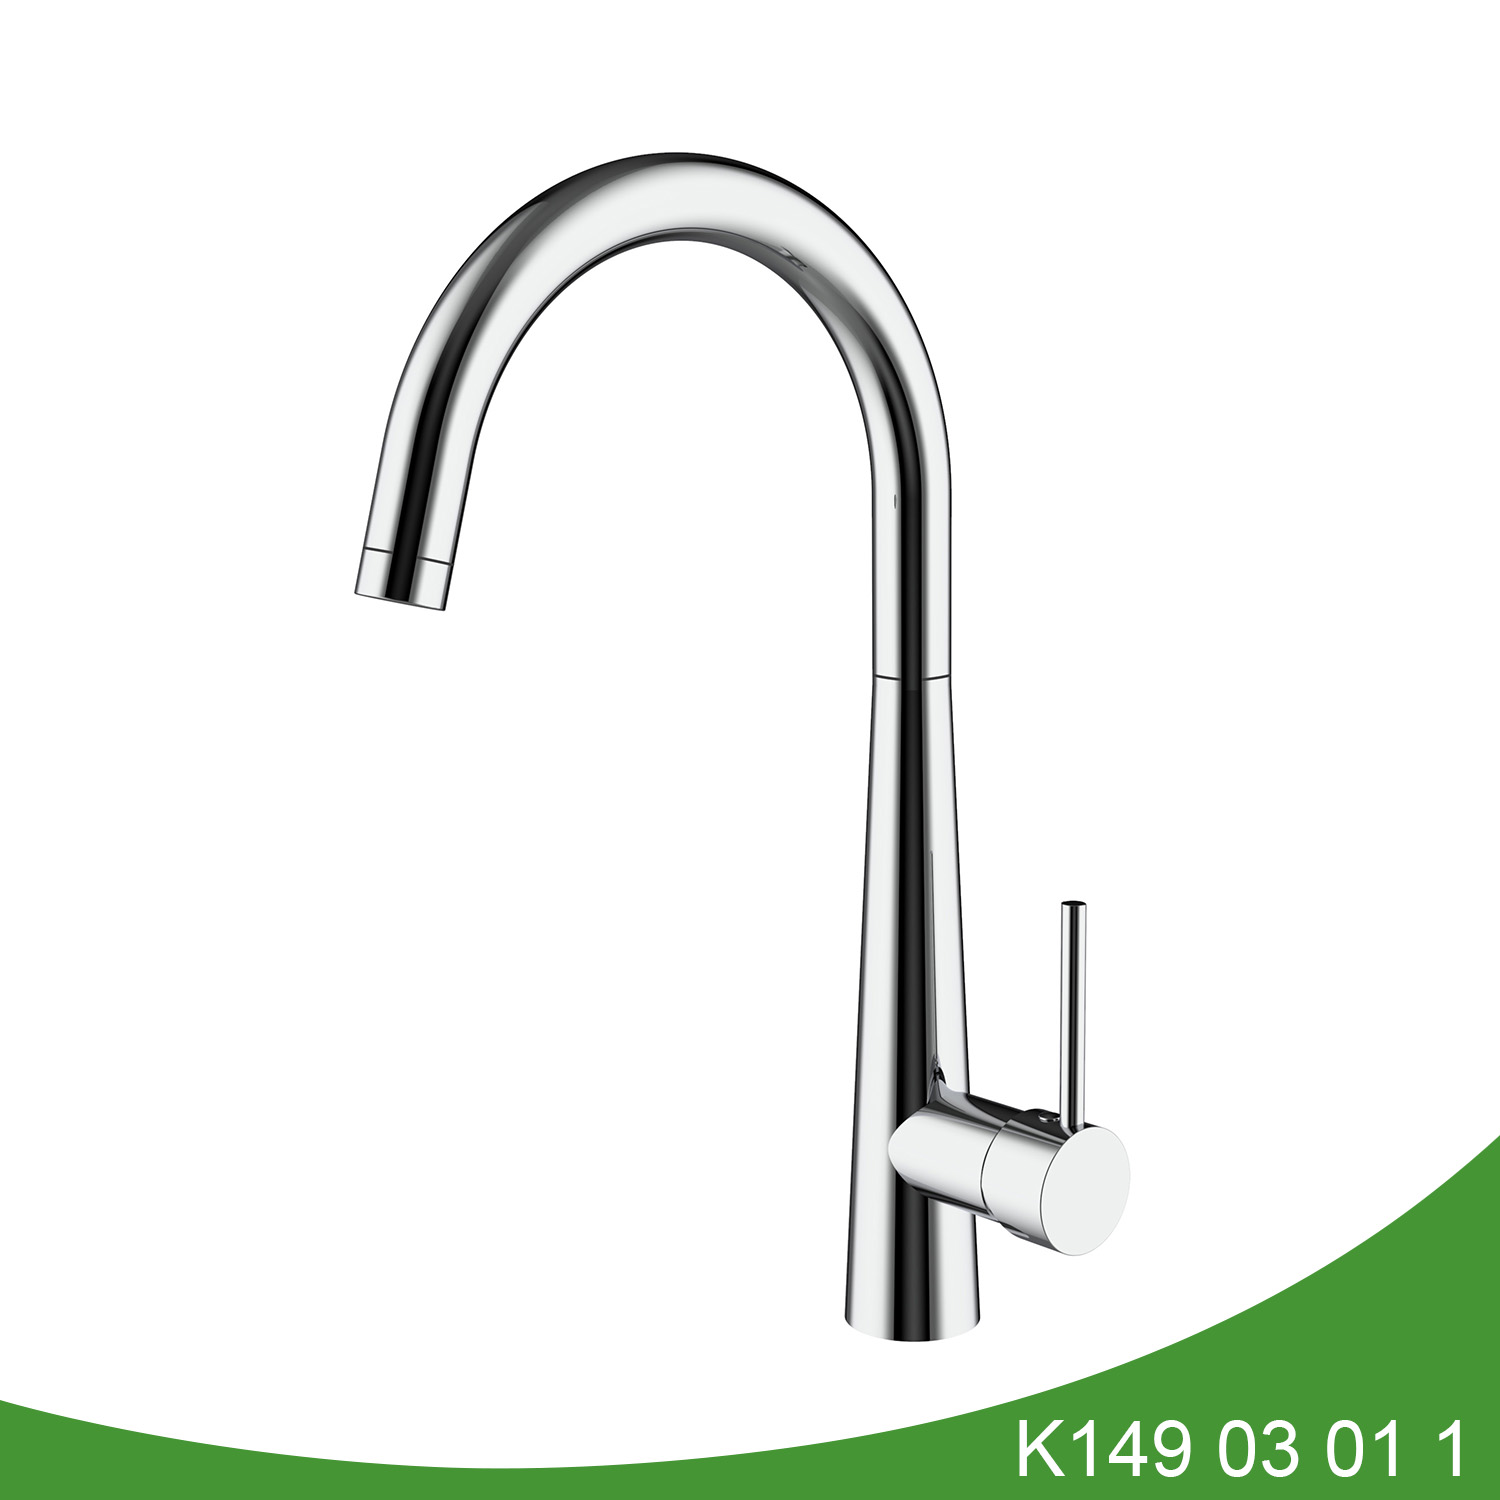 Single handle kitchen tap K149 03 01 1